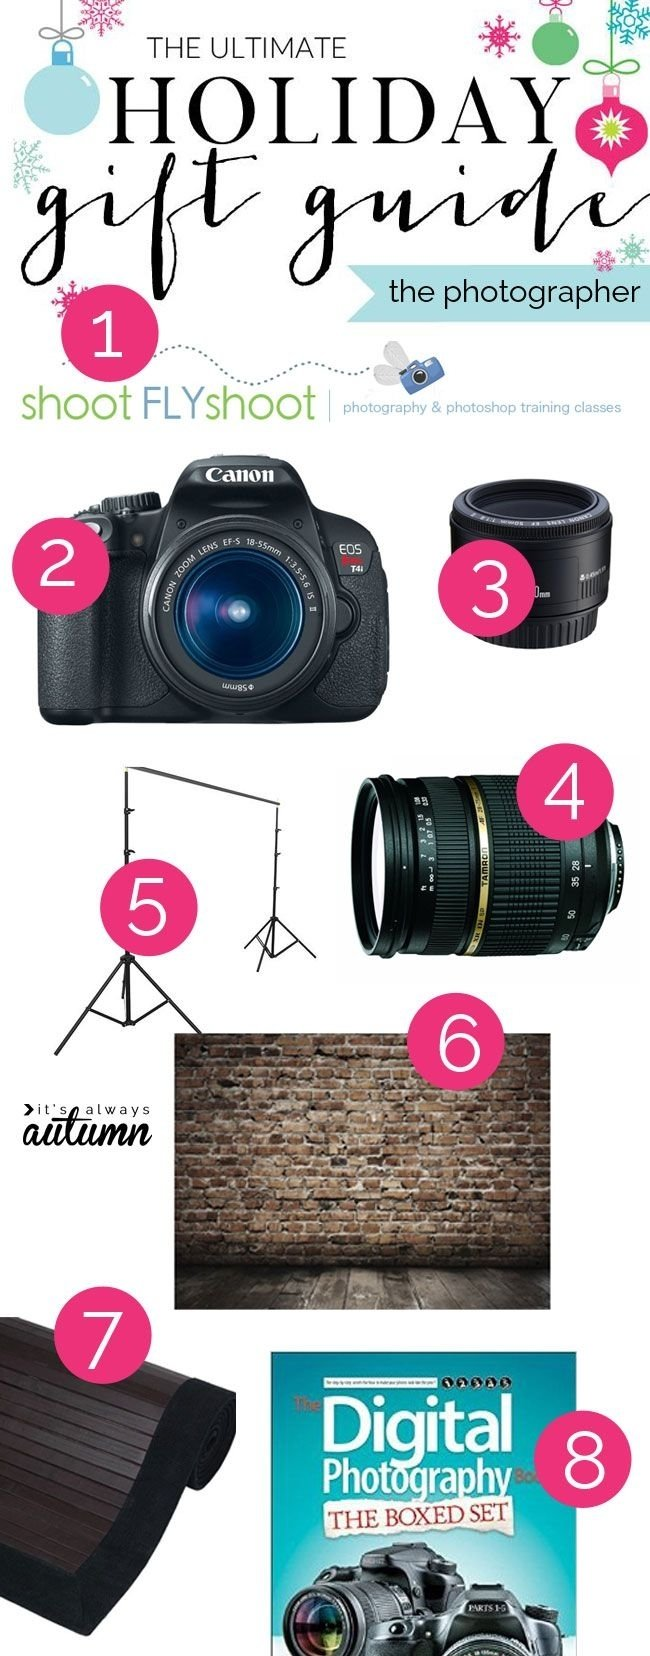 10 Fashionable Gift Ideas For Photography Lovers 16 best gifts for photography lovers images on pinterest camera